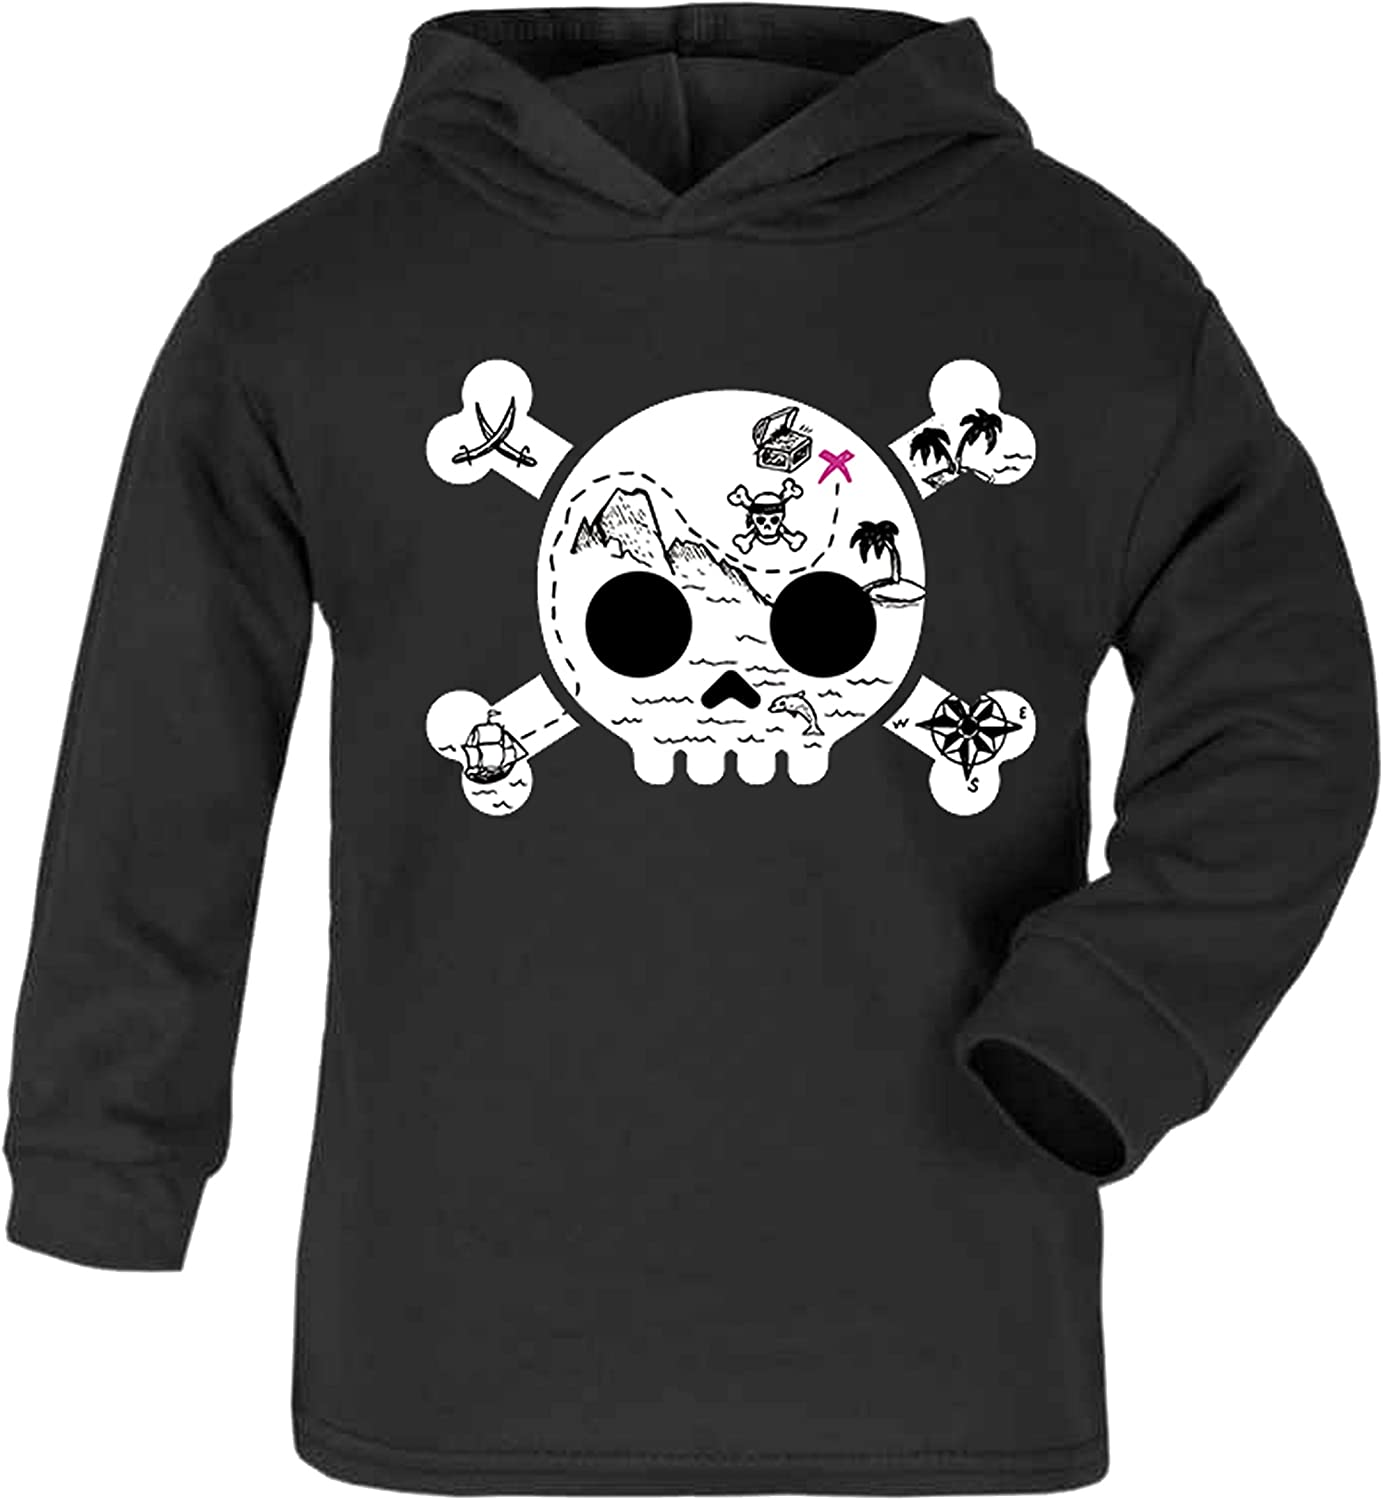 Treasure Island Skull Childrens Hoodie Toddler Hoody Kids Sweatshirt Pirate Novelty Kidswear Ahoy Skull 1-2 Years, Black